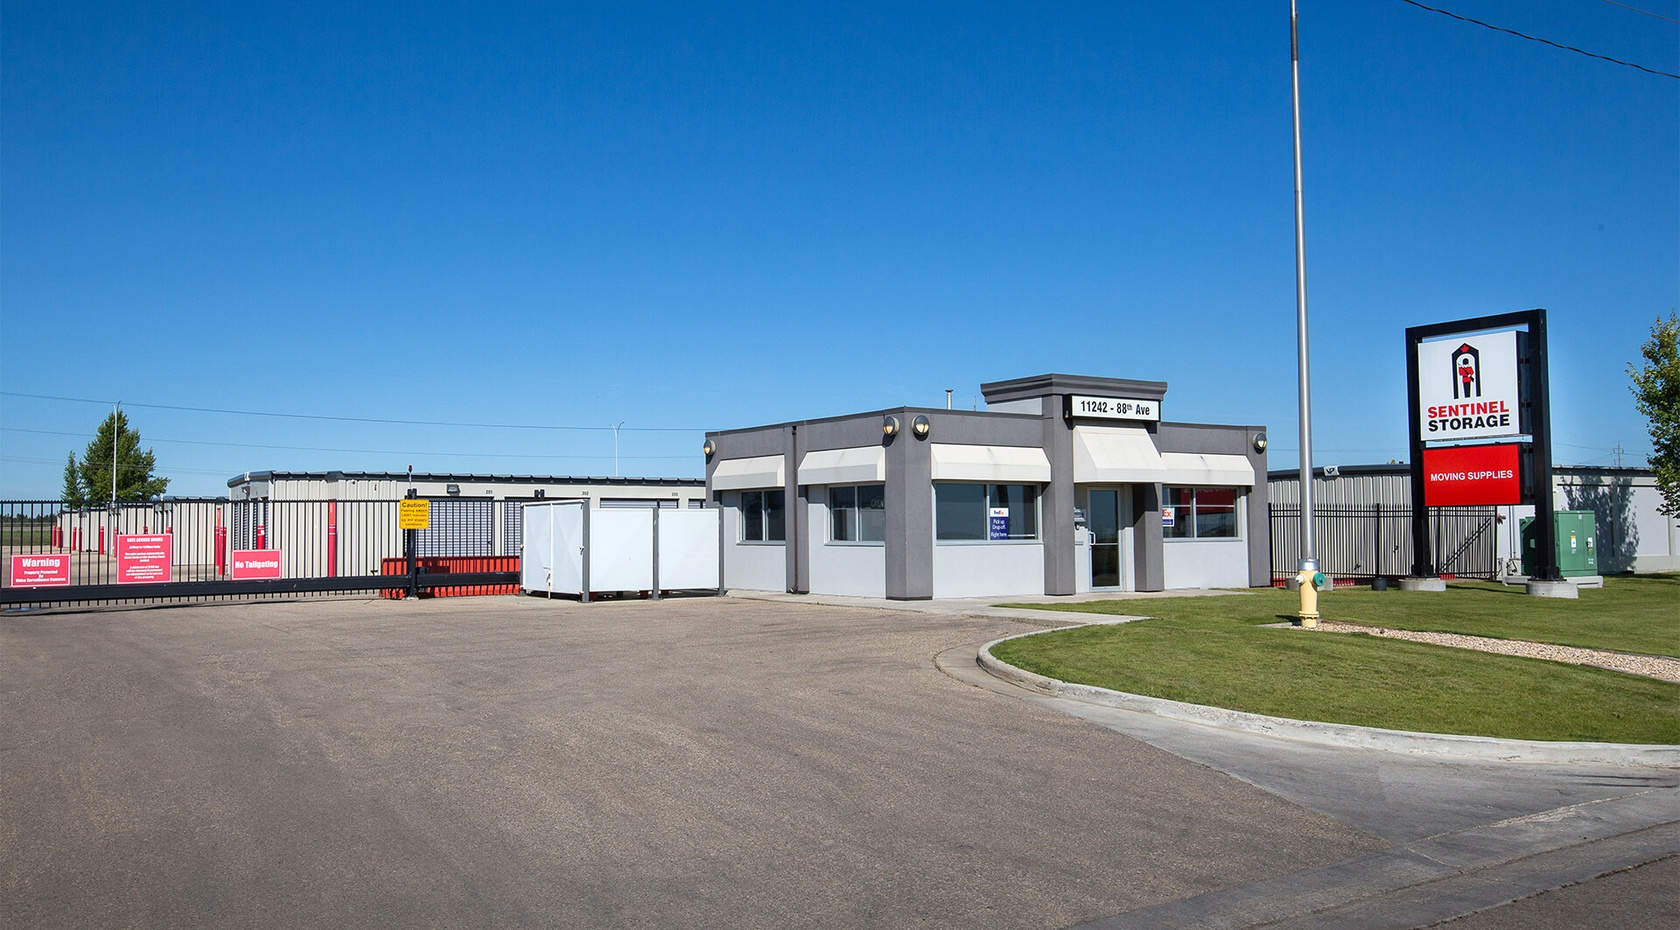 Rent Fort Saskatchewan storage units at 11242 88 Ave. We offer a wide-range of affordable self storage units and your first 4 weeks are free!